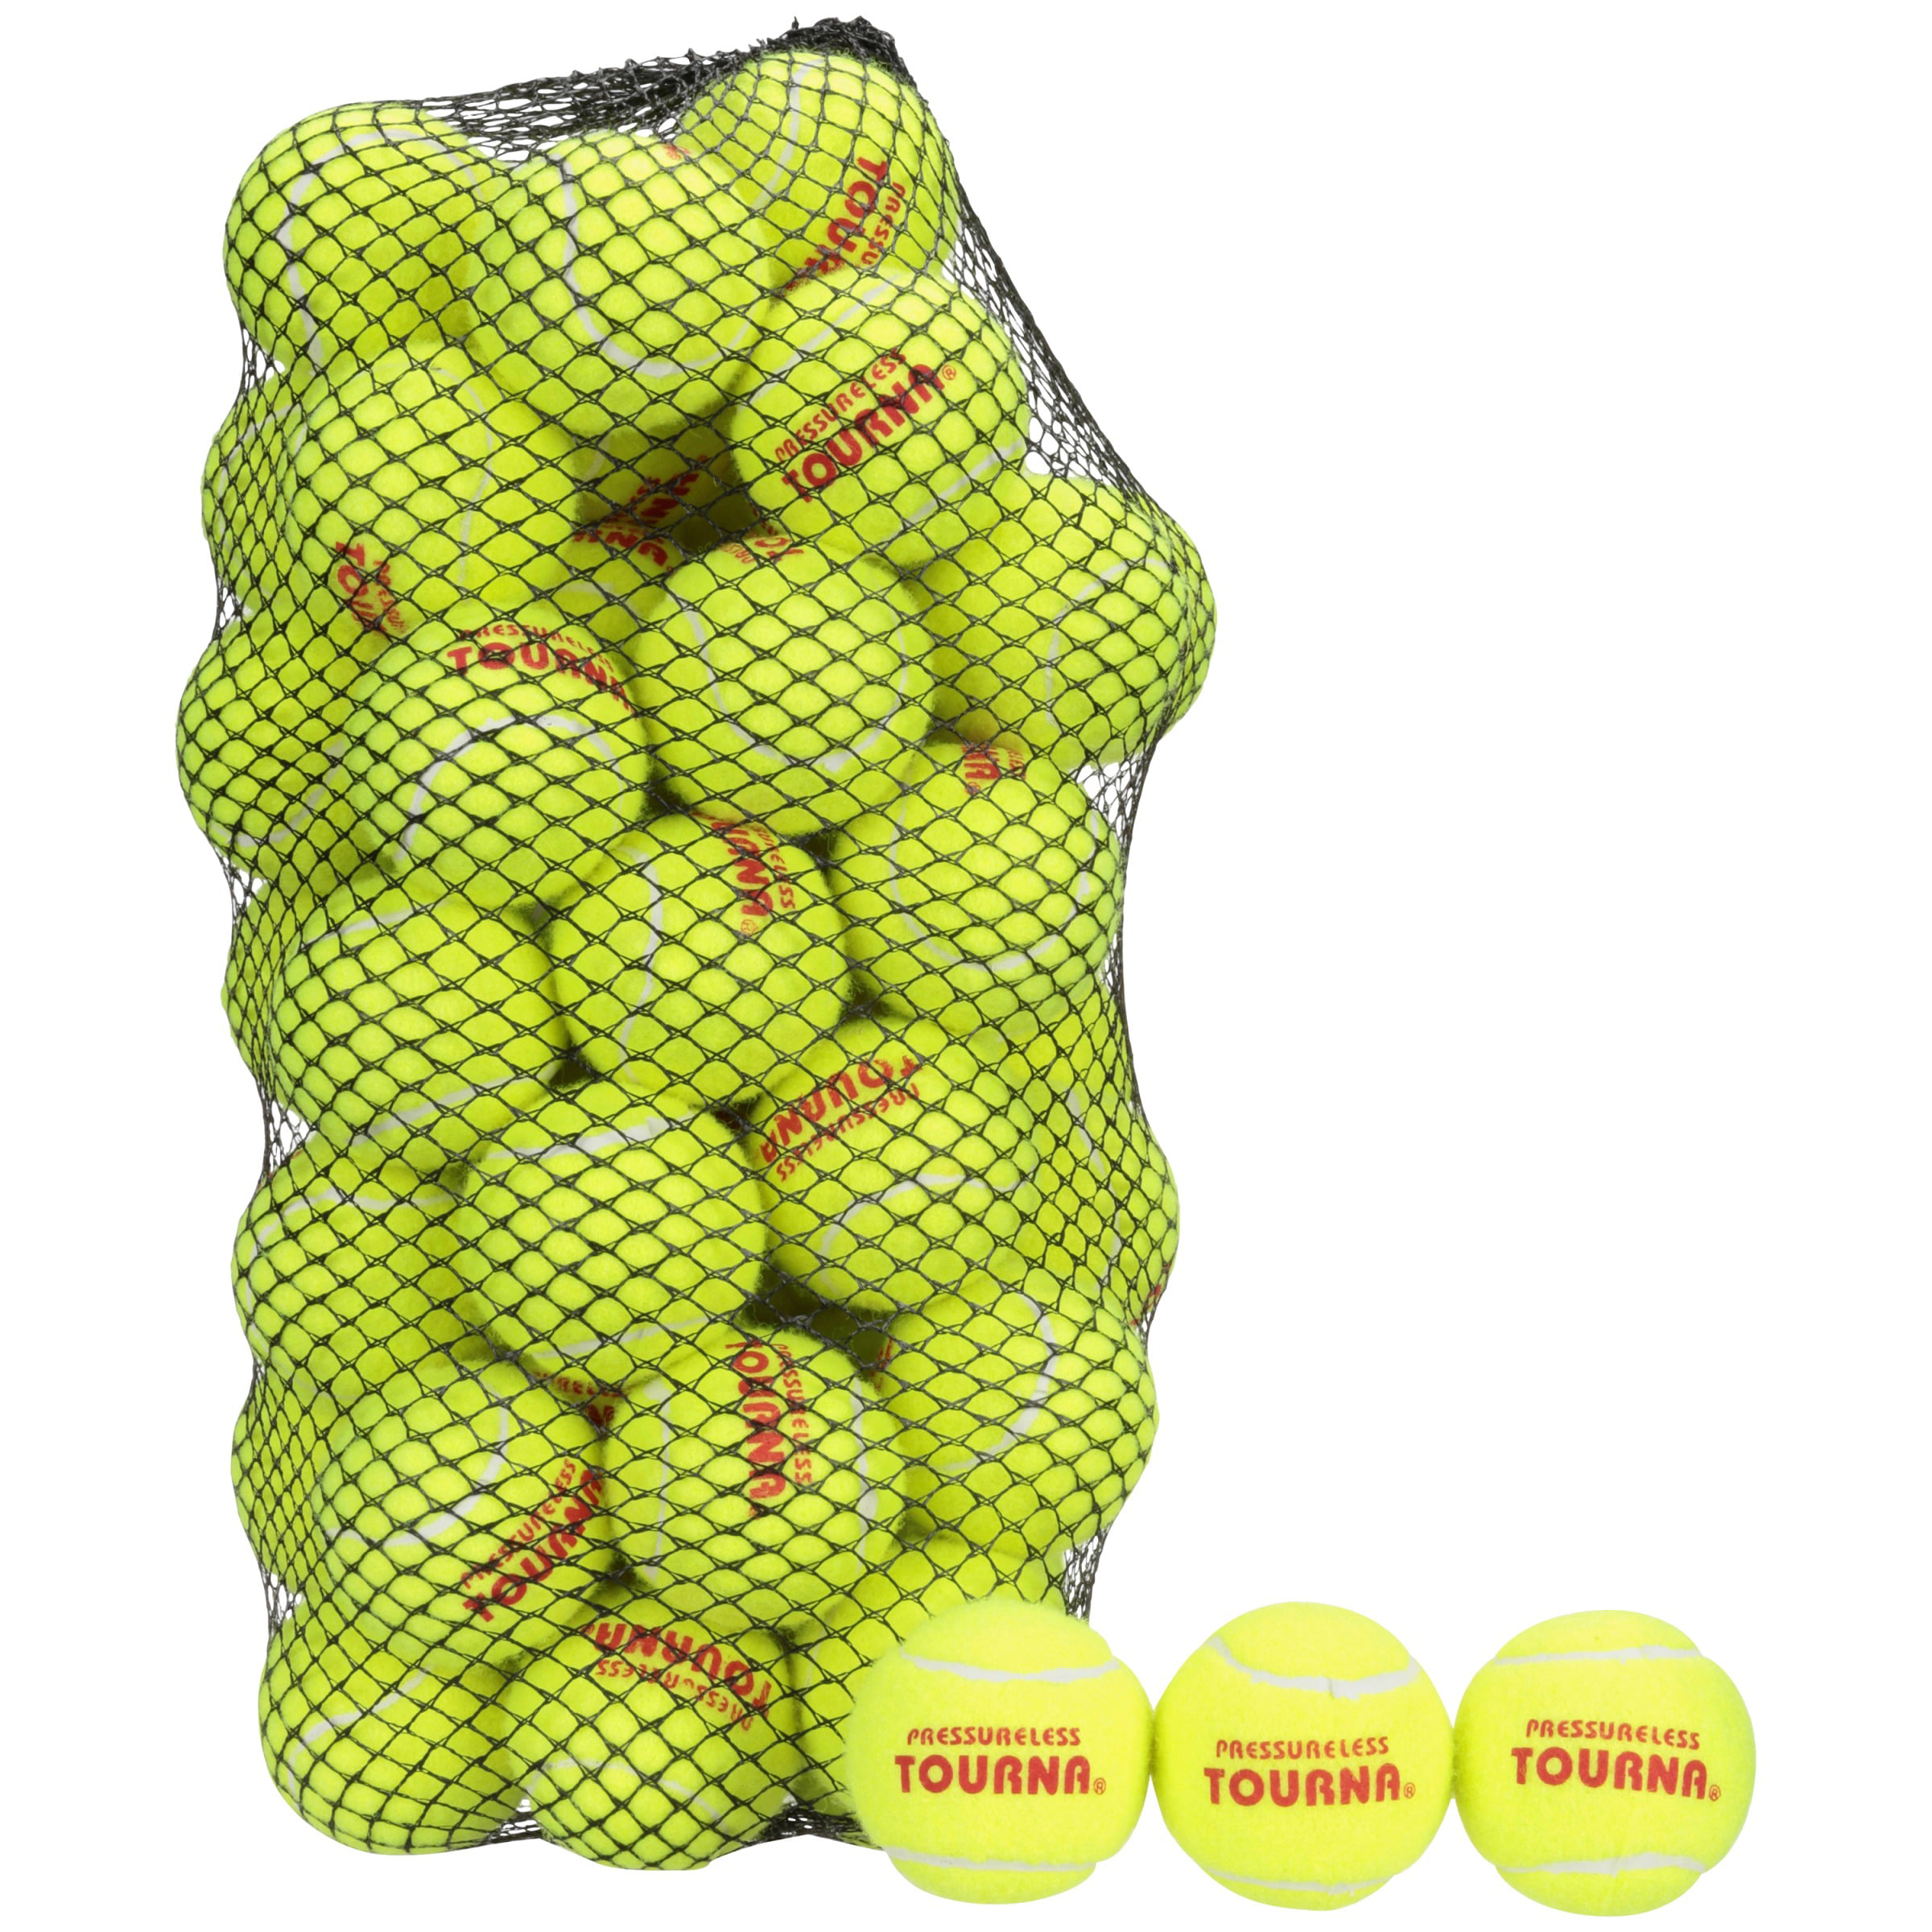 Click here to buy Tourna Pressureless Tennis Balls 60 ct Bag by Unique Sports.